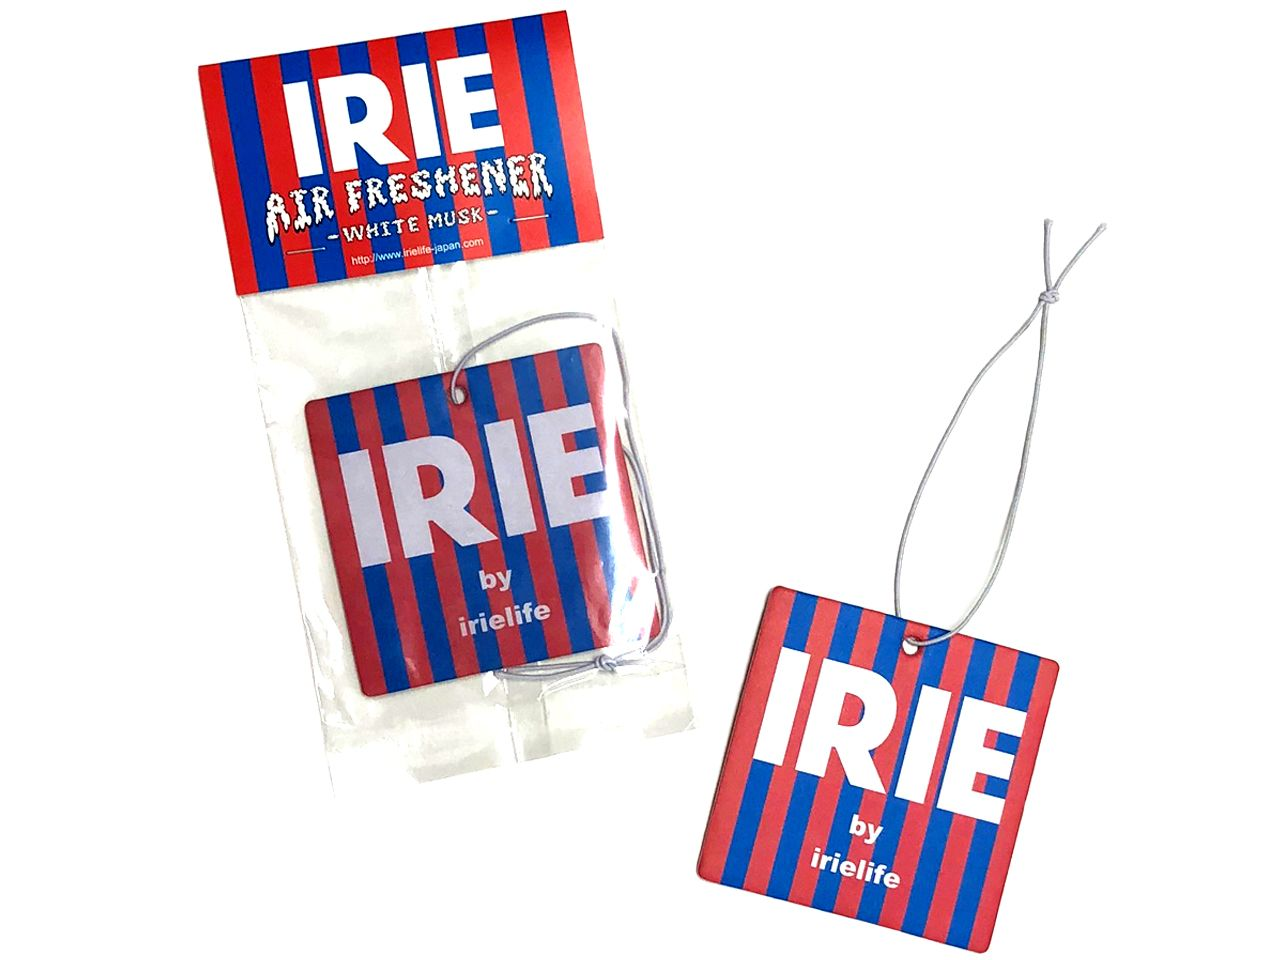 【30%OFF】IRIE LOGO AIR FRESHNER -IRIE by irielife-